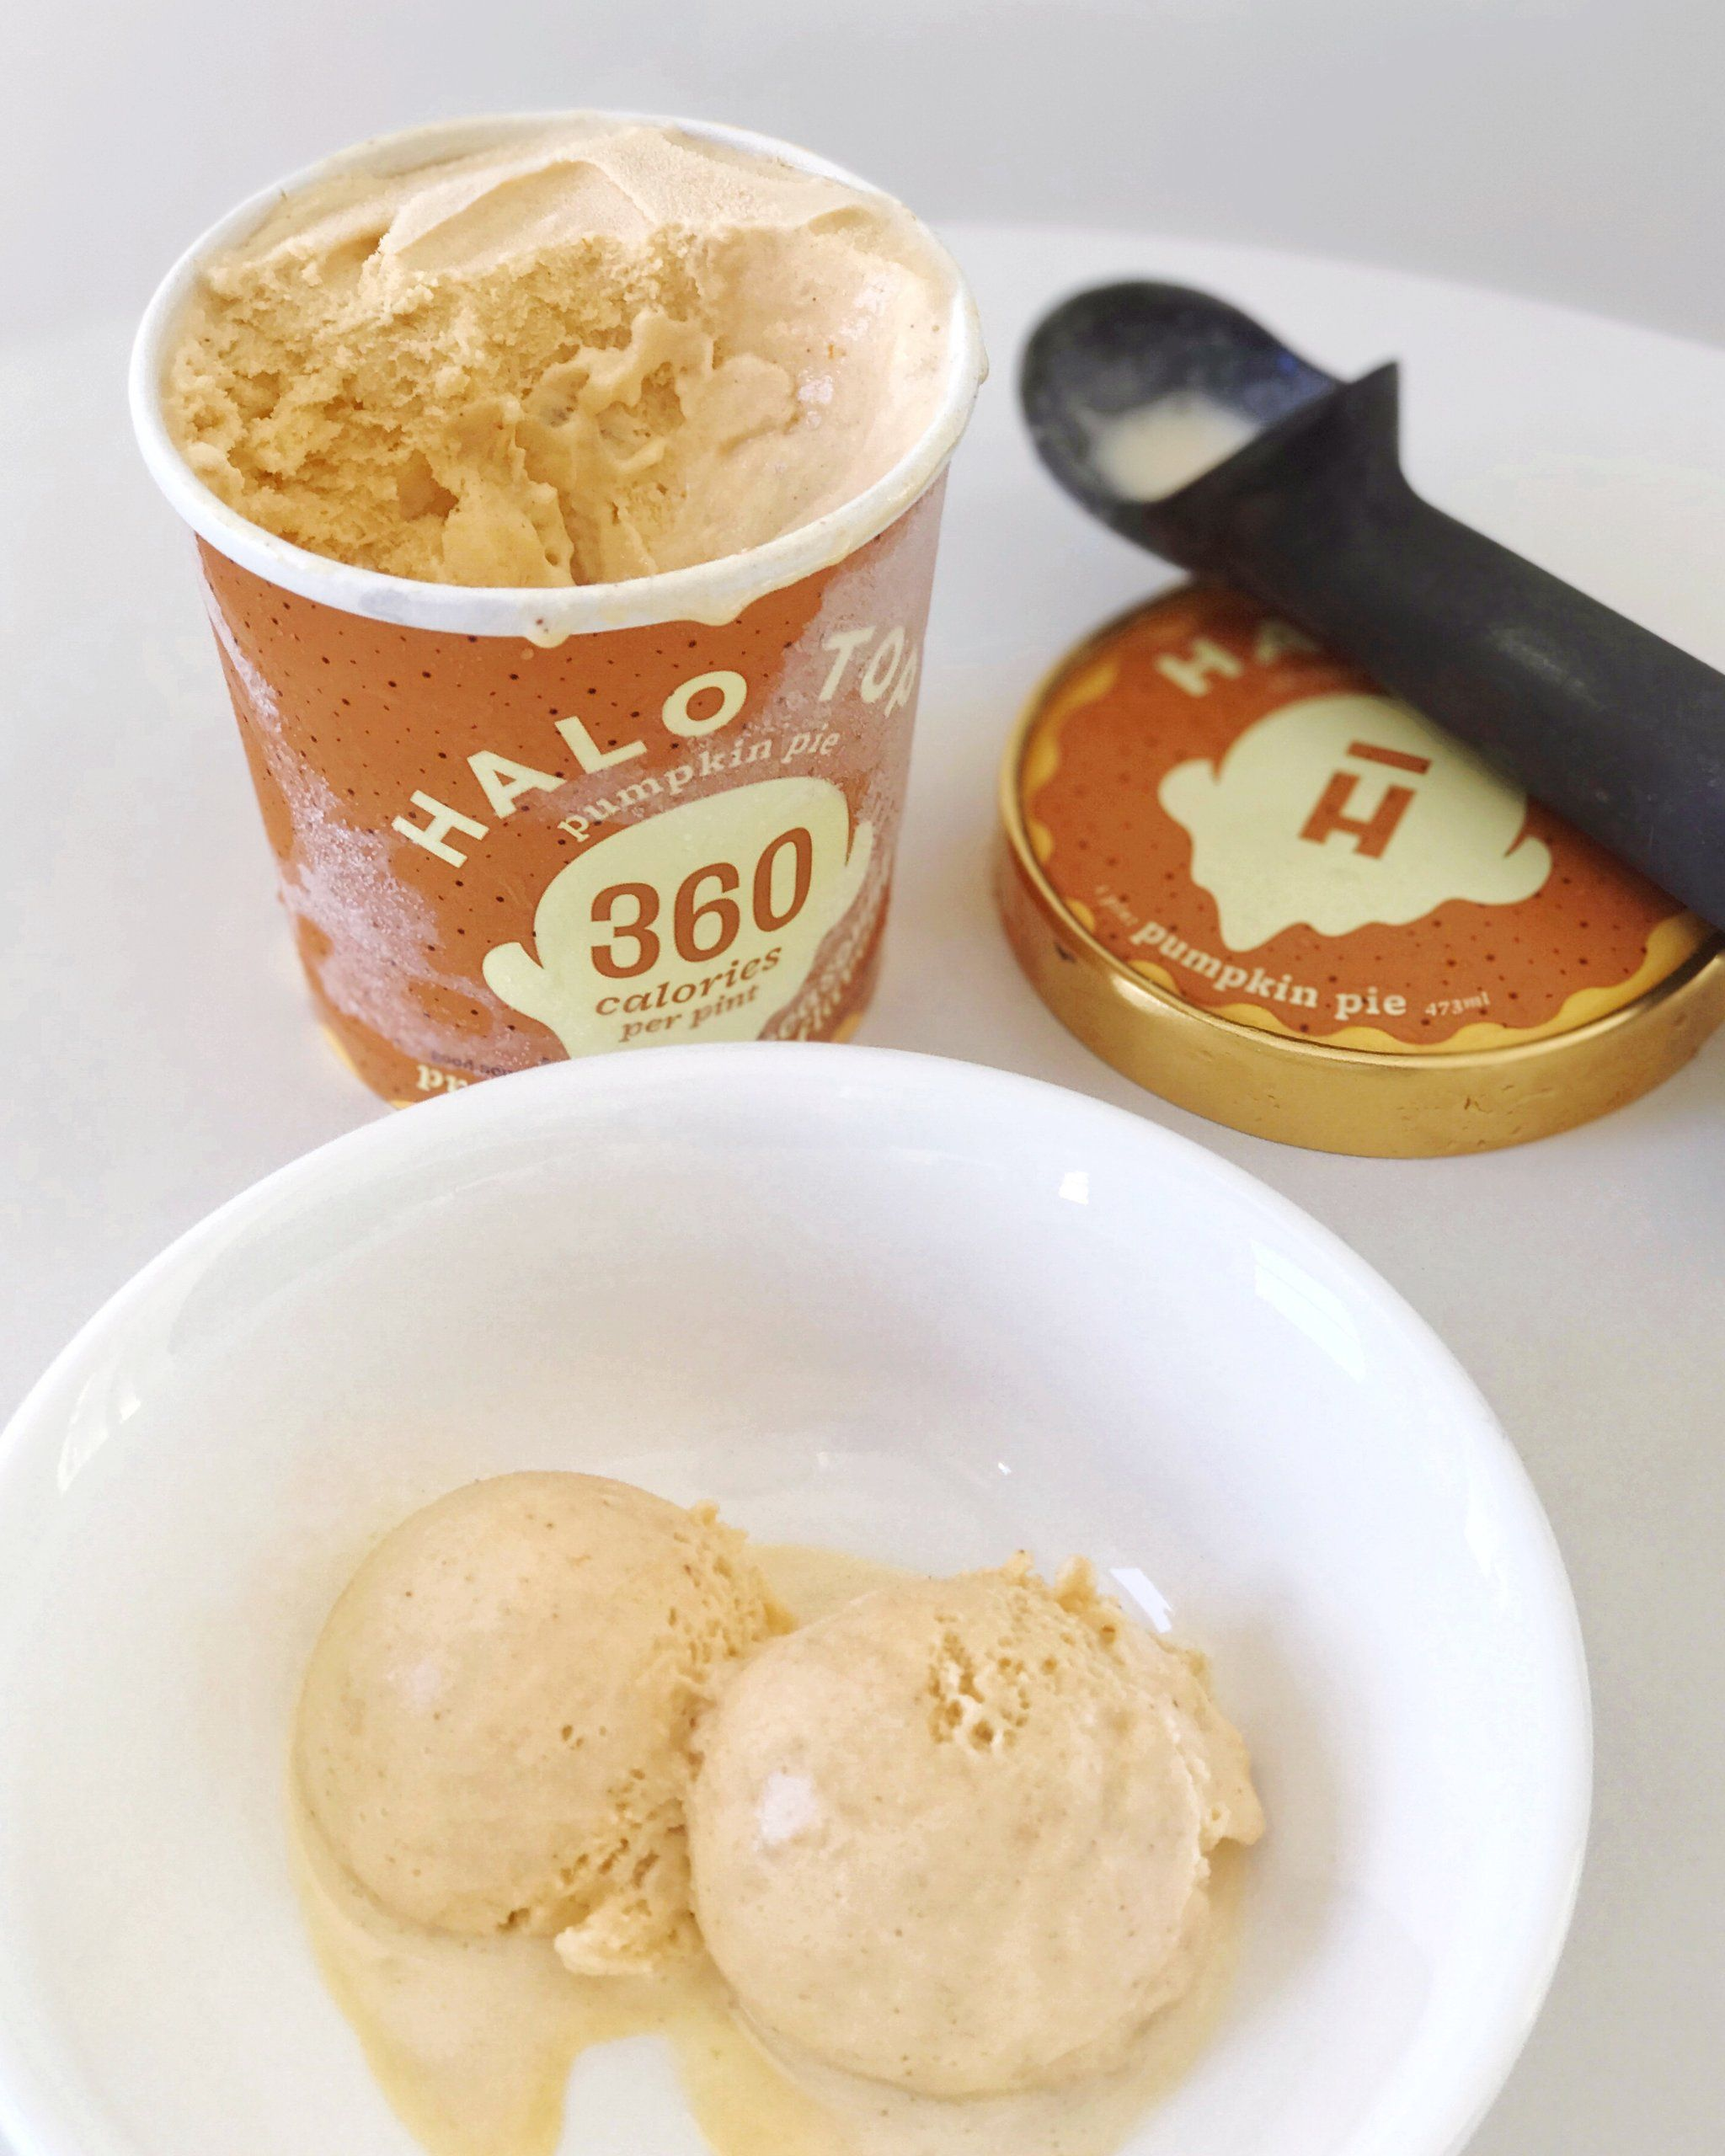 Holy Sh T Halo Top Pumpkin Pie Ice Cream Is Here And It S Unreal Chocolate Chip Cookies Chocolate Chip Cookie Dough Pumpkin Pie Ice Cream